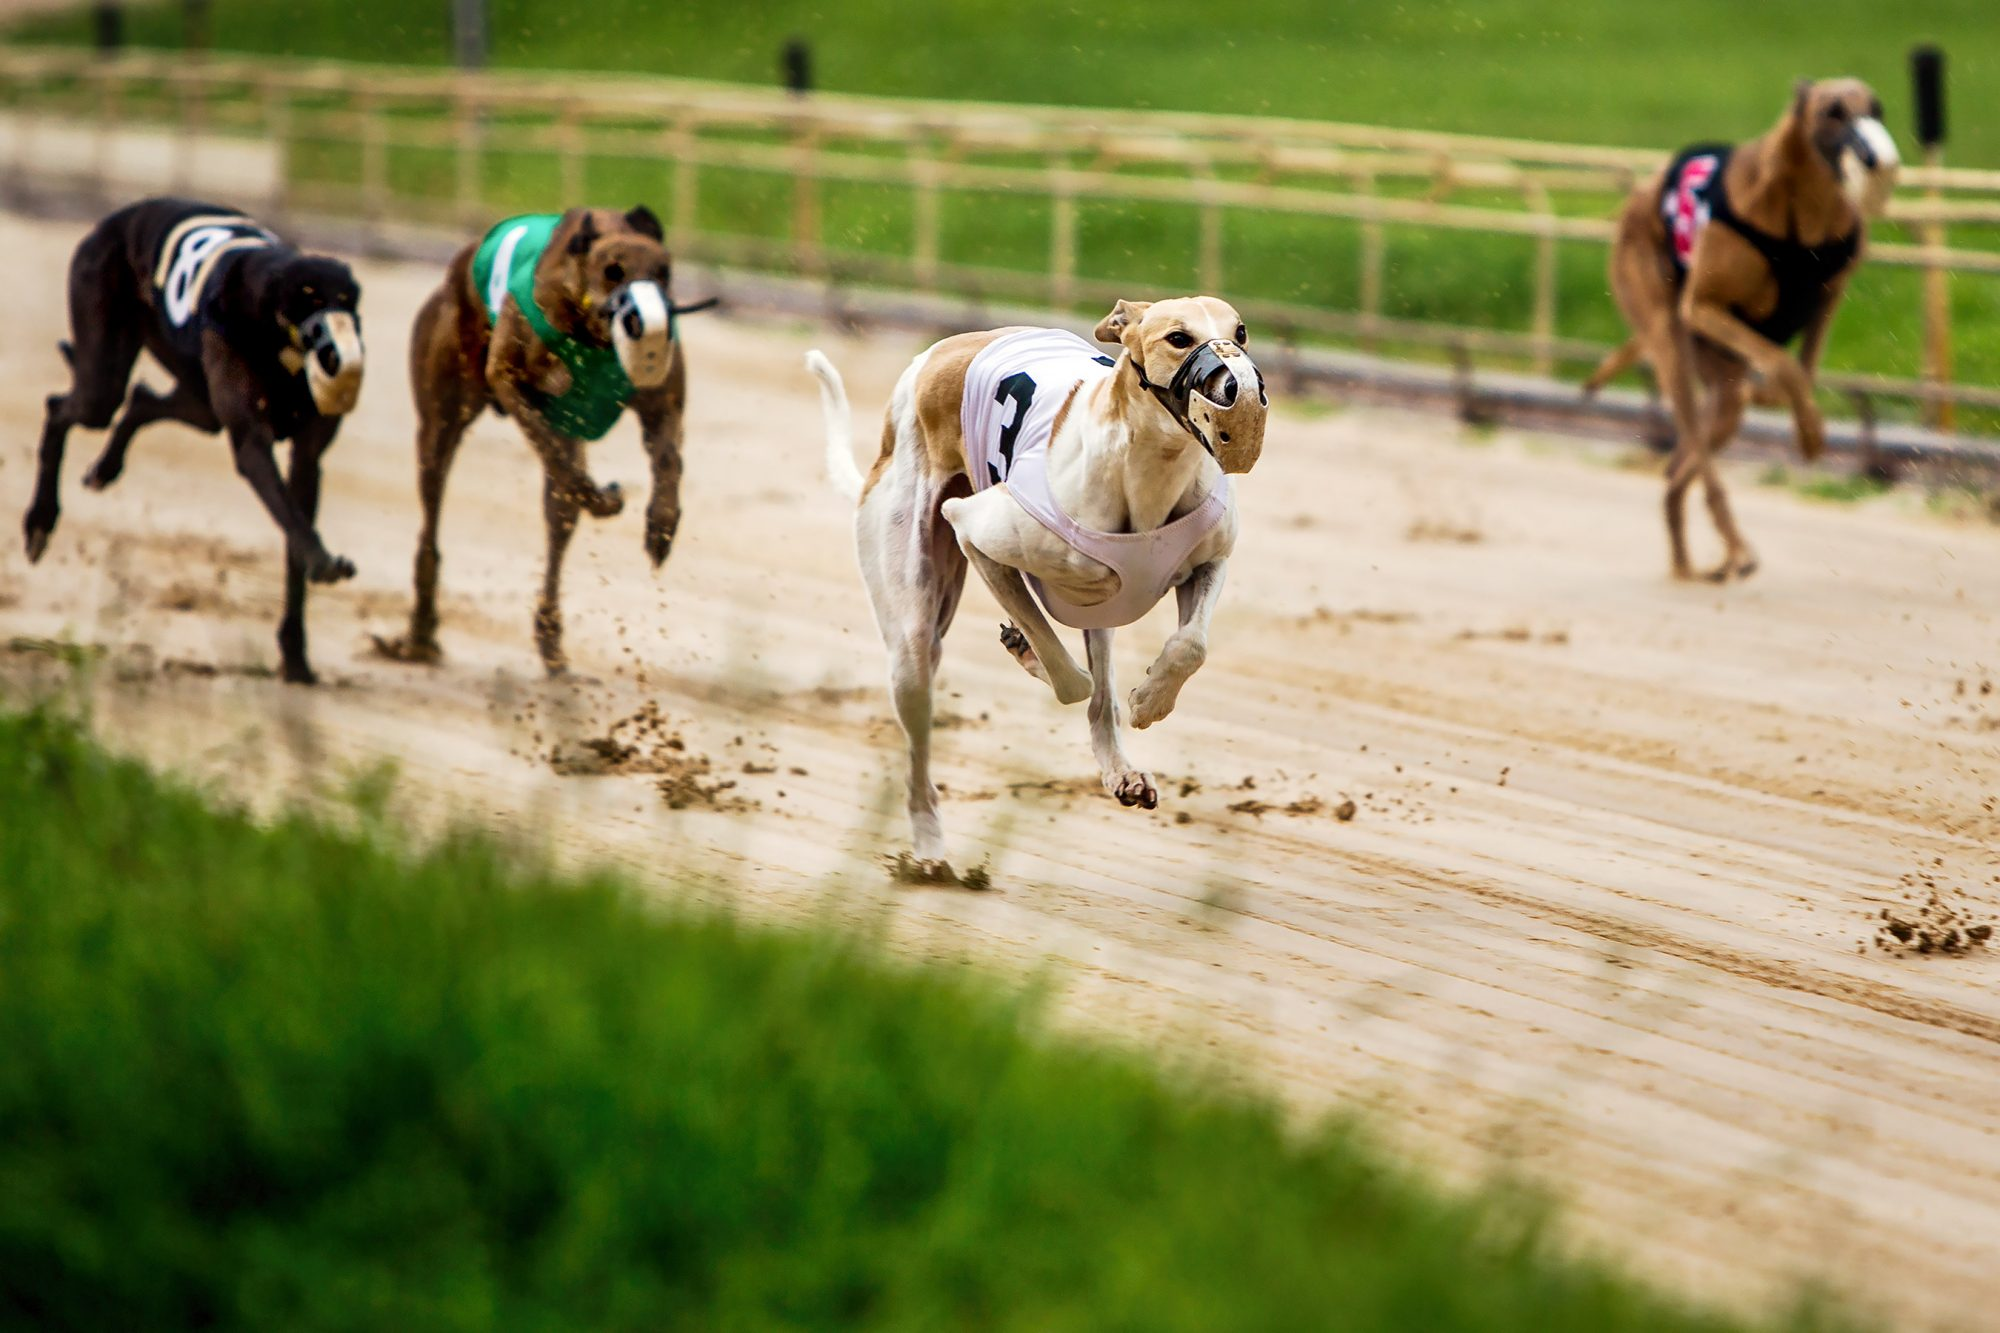 No Dire Emergency for Florida's Racing Greyhounds, Officials Say, as Rescues Fight to Help Them